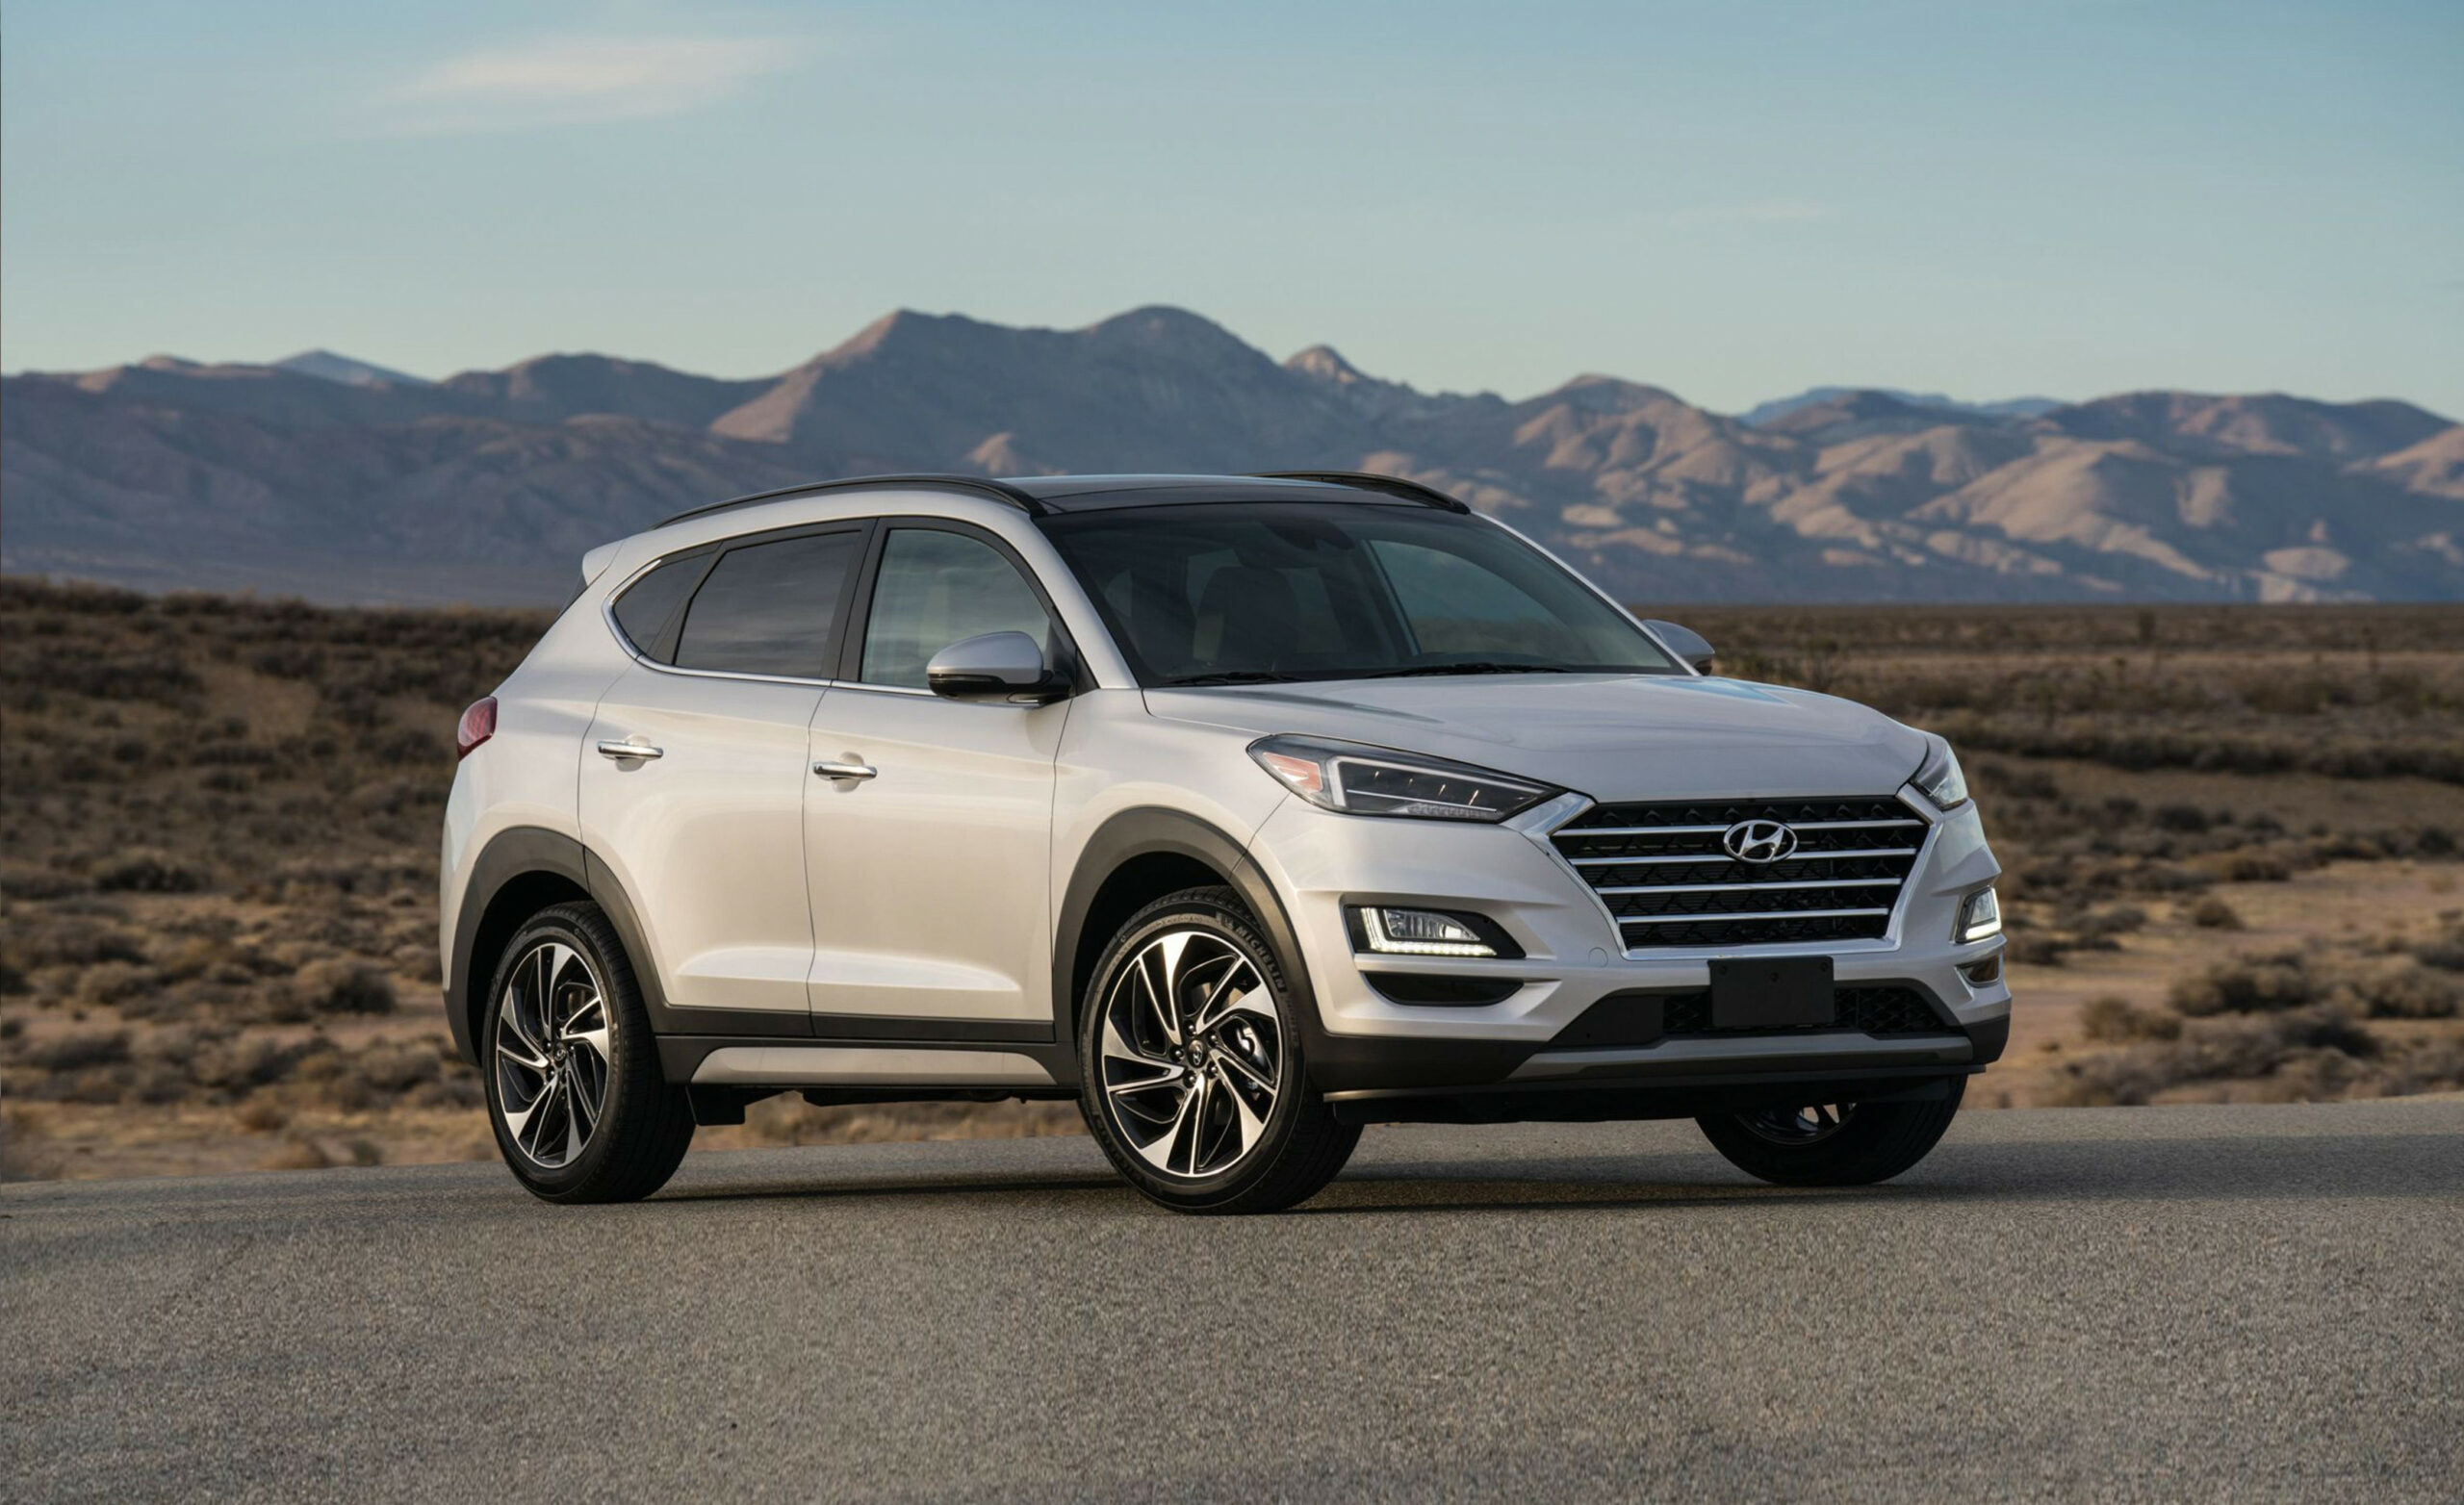 6 Hyundai Tucson Review, Pricing, and Specs